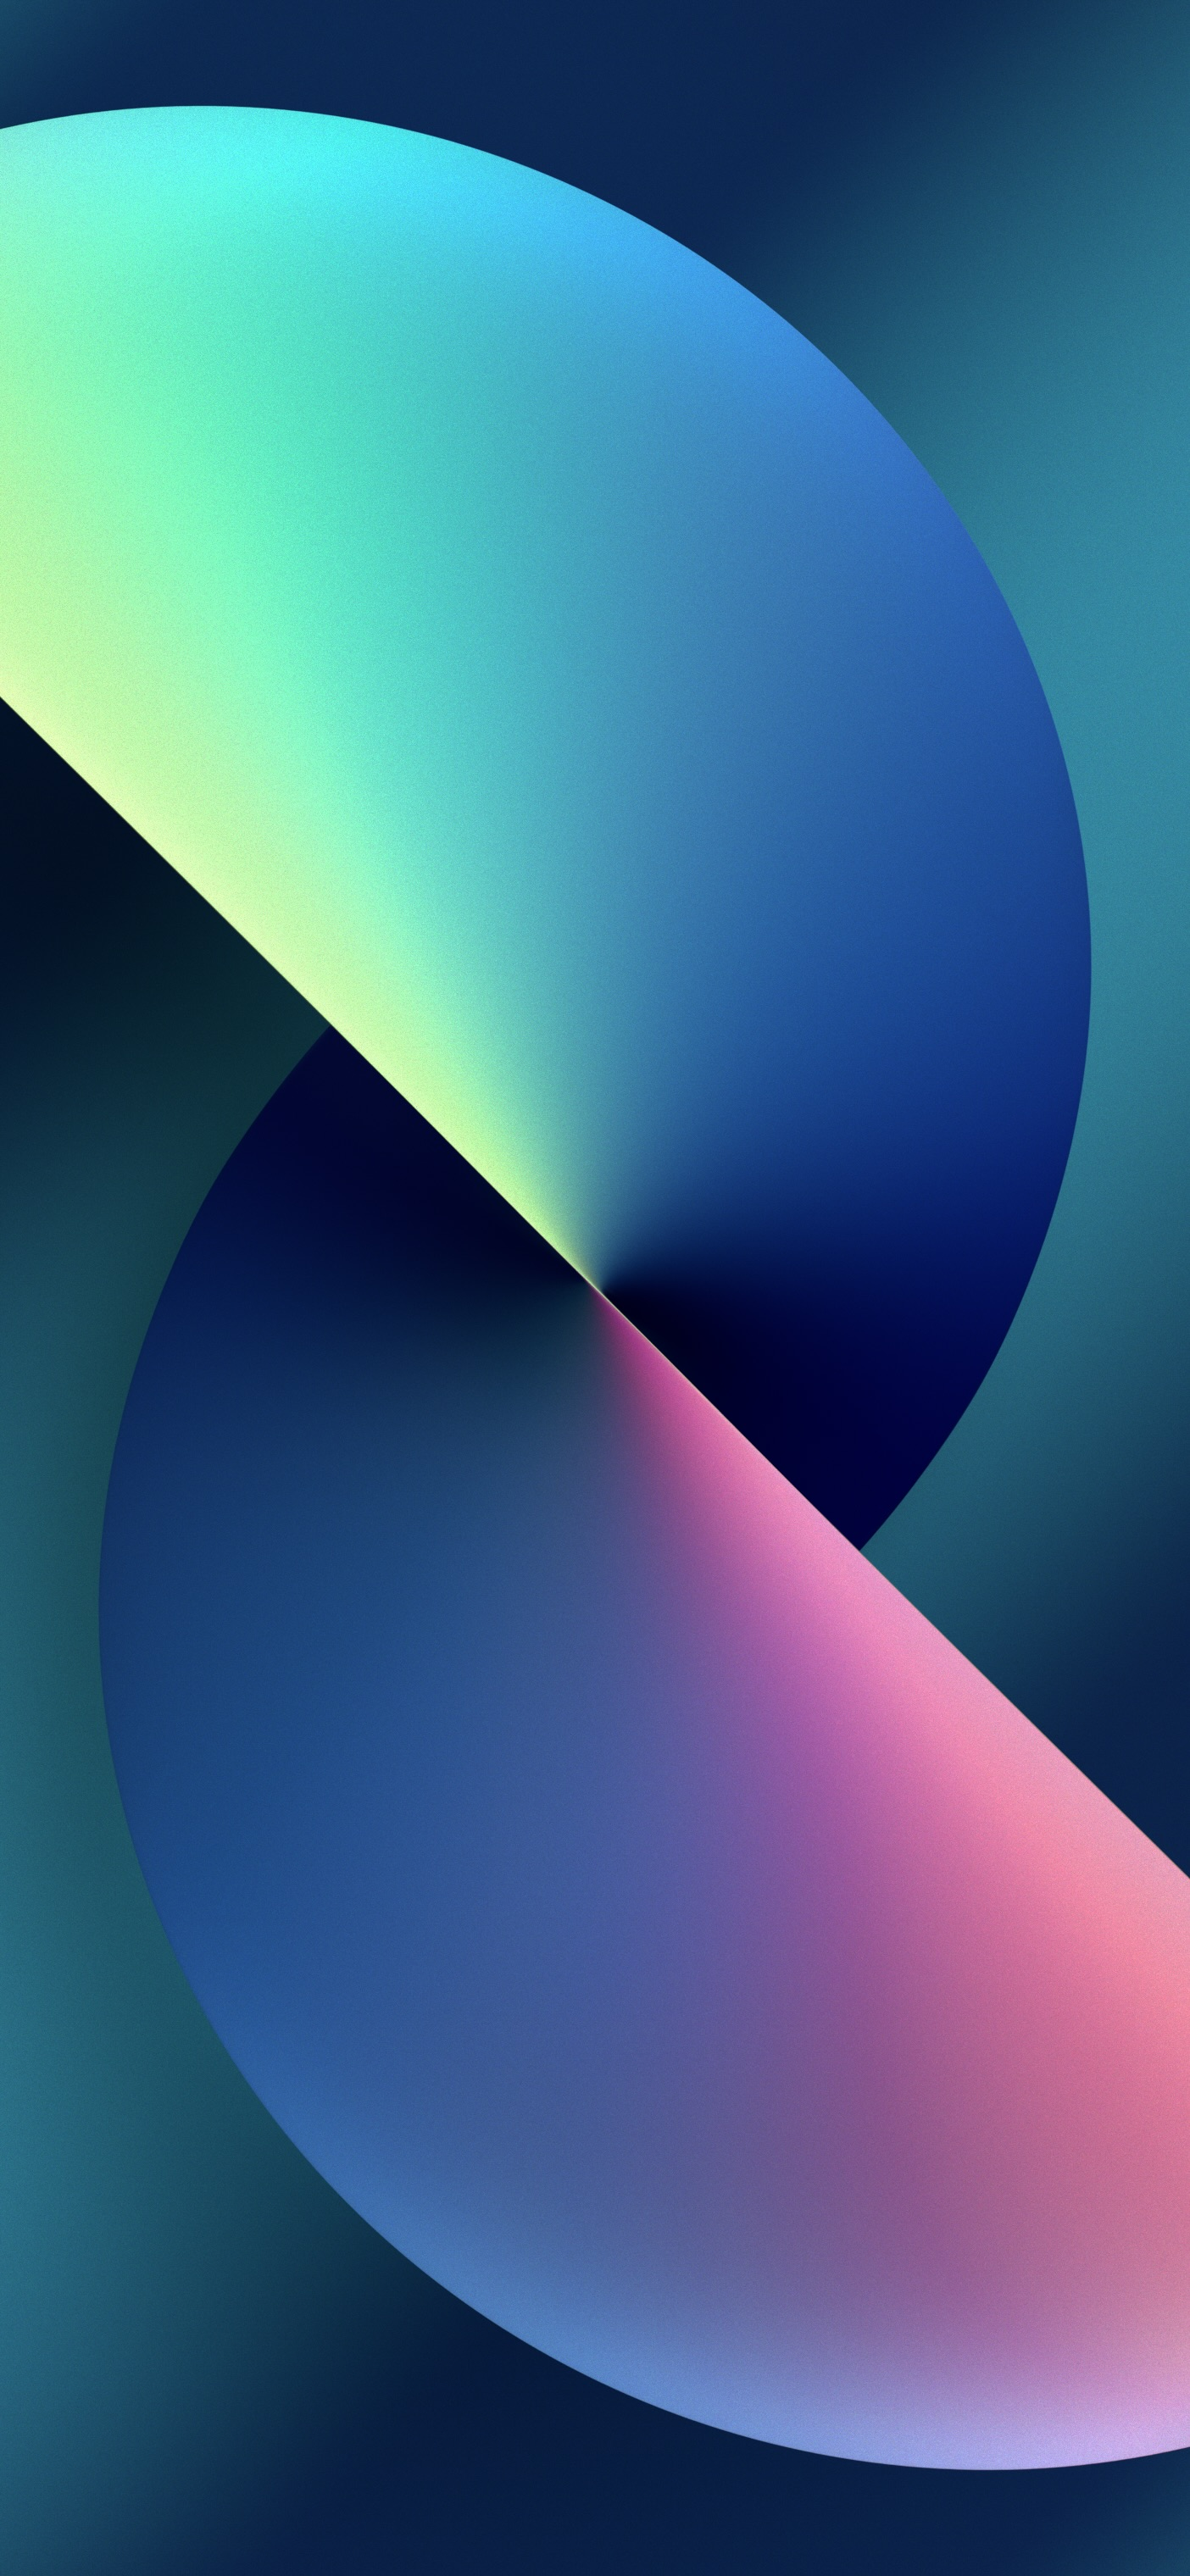 Download Apple's new iPhone 21 wallpapers right here  21to21Mac